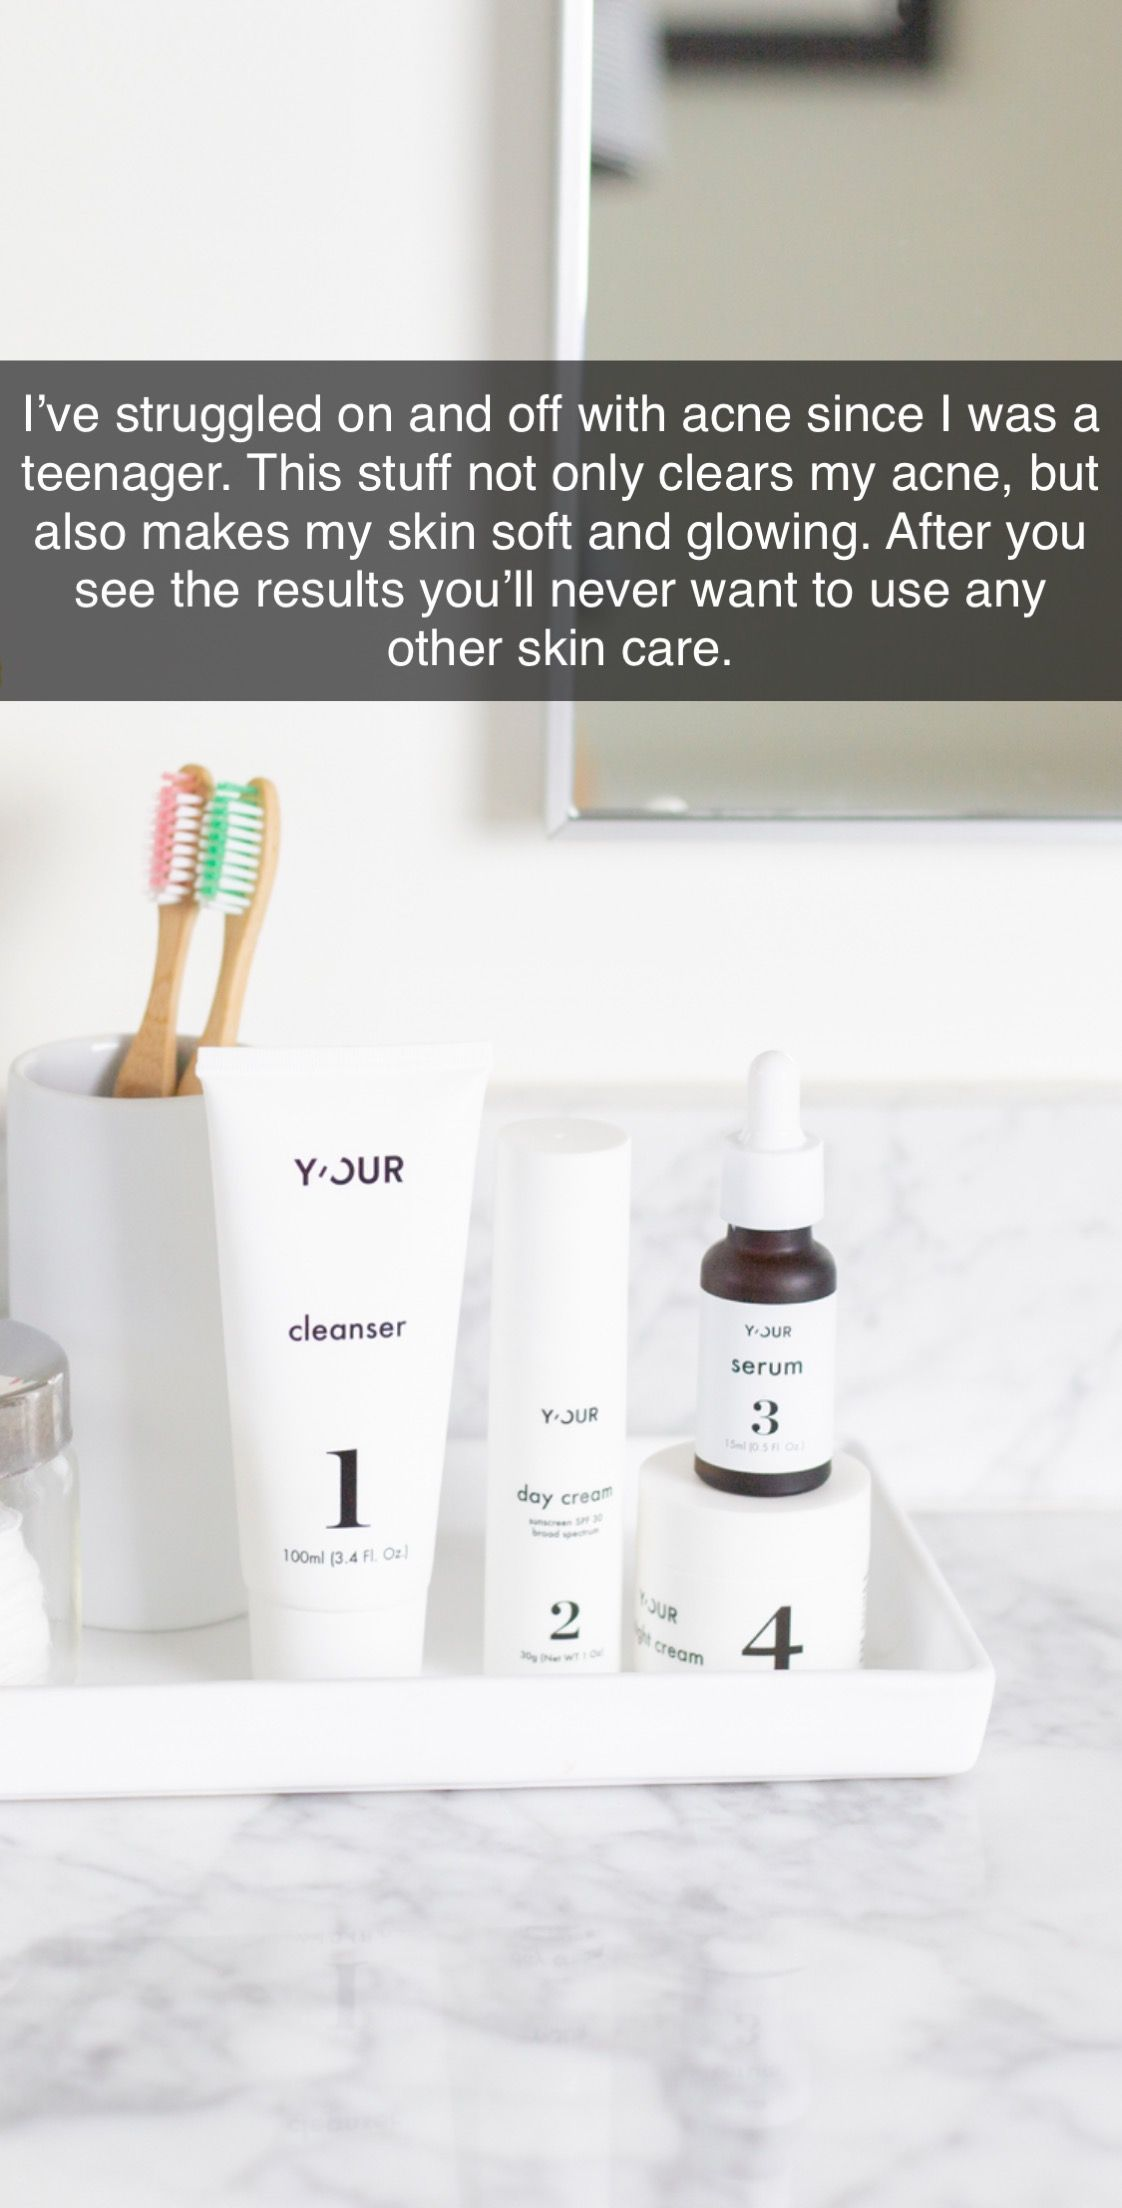 Personalized Skincare Products For Acne Clogged Pores And Problematic Skin In 2020 Skin Care Makeup Skin Care Skin Care Solutions